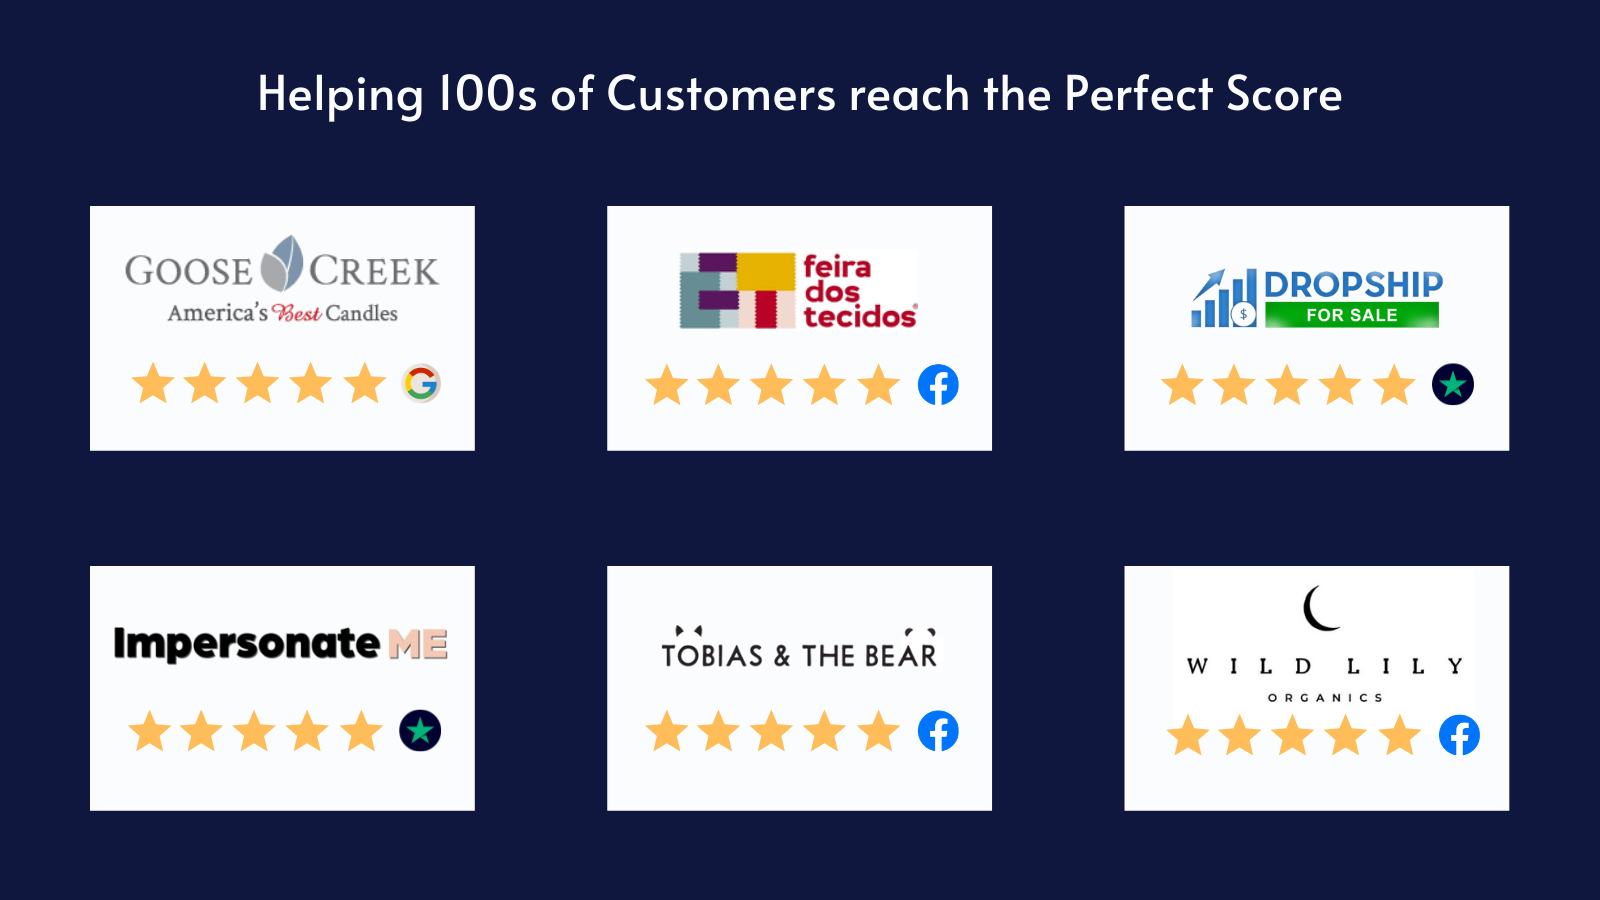 Helping 100s of Customers reach the perfect score